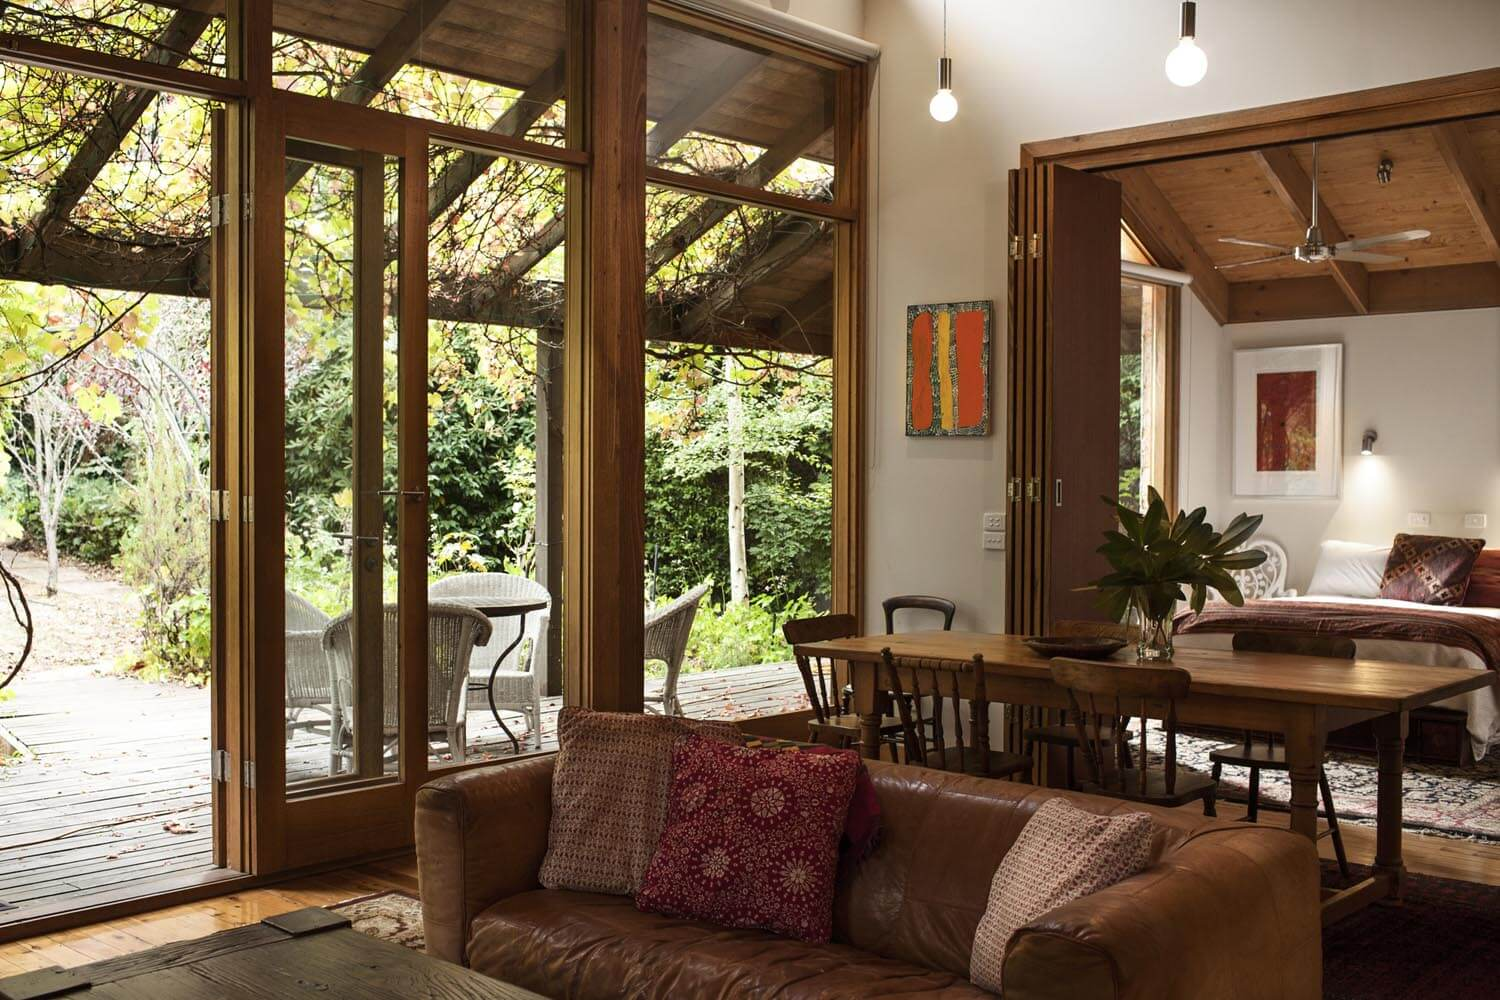 Natural views and comfort at Georgie Gardens, Daylesford